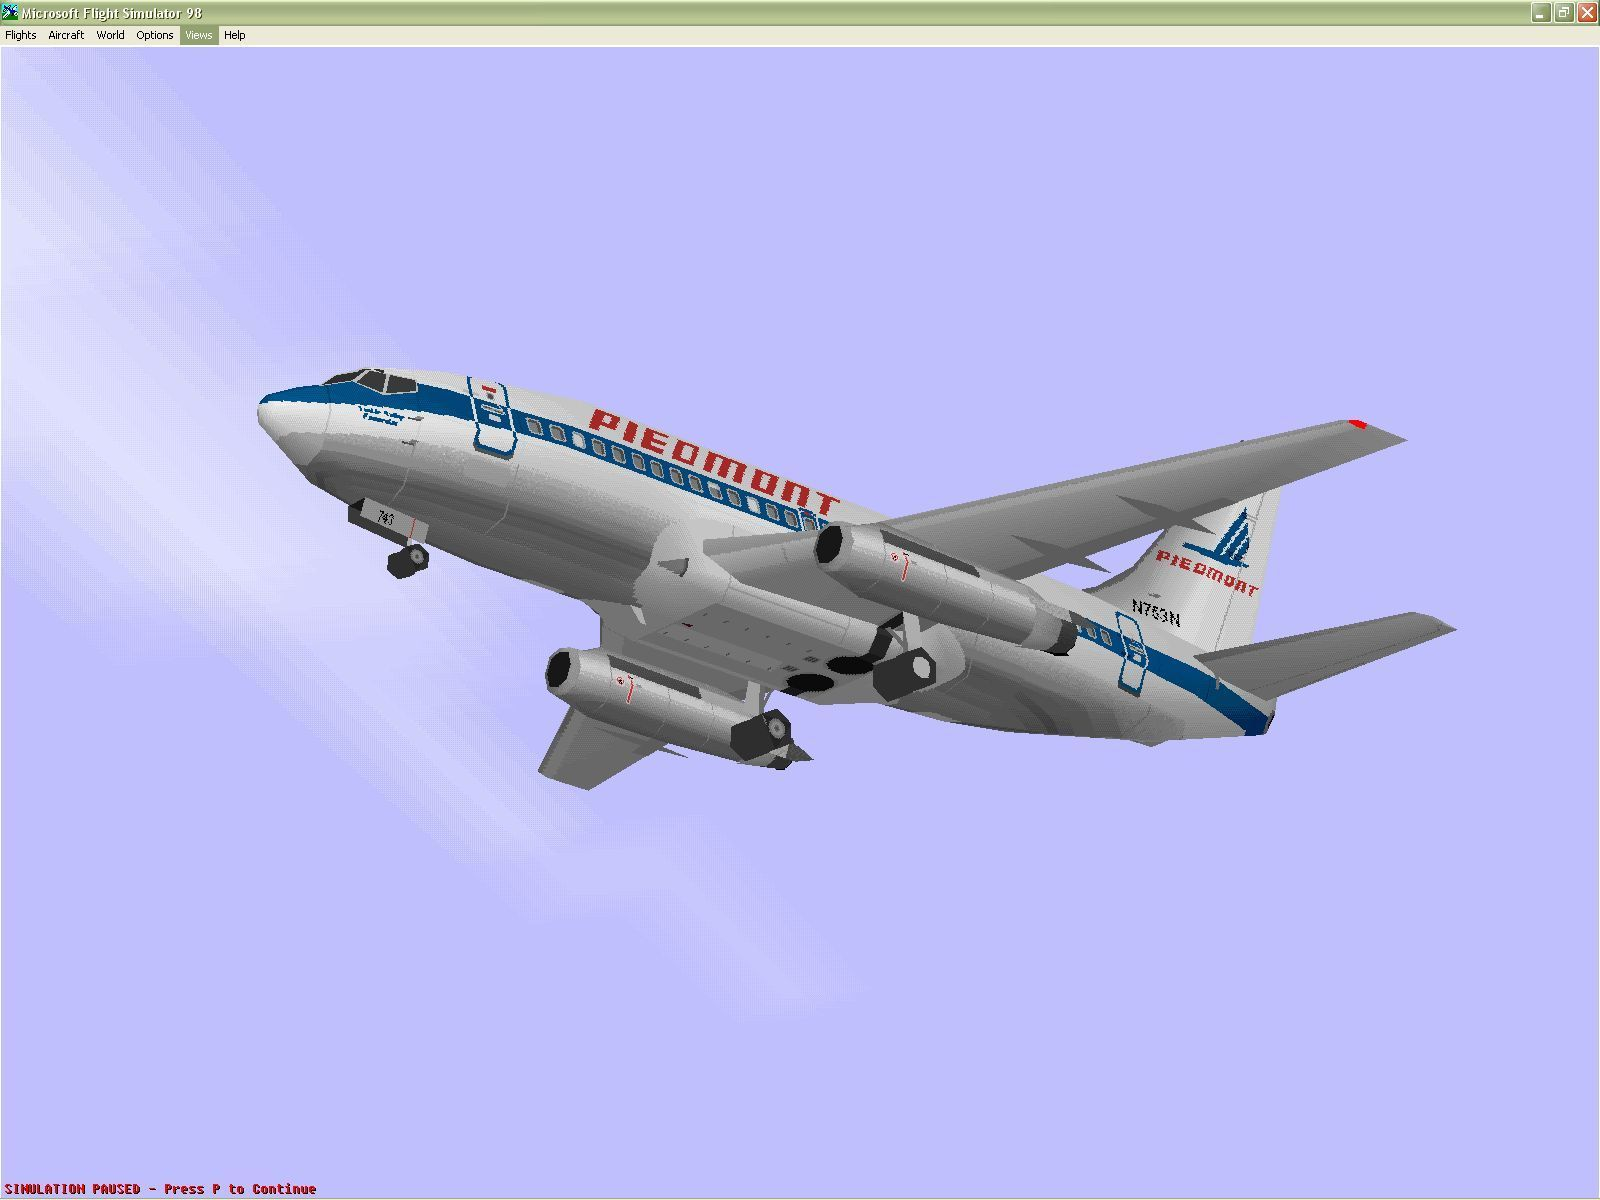 VIP Classic Airliners 2000 Screenshots for Windows - MobyGames